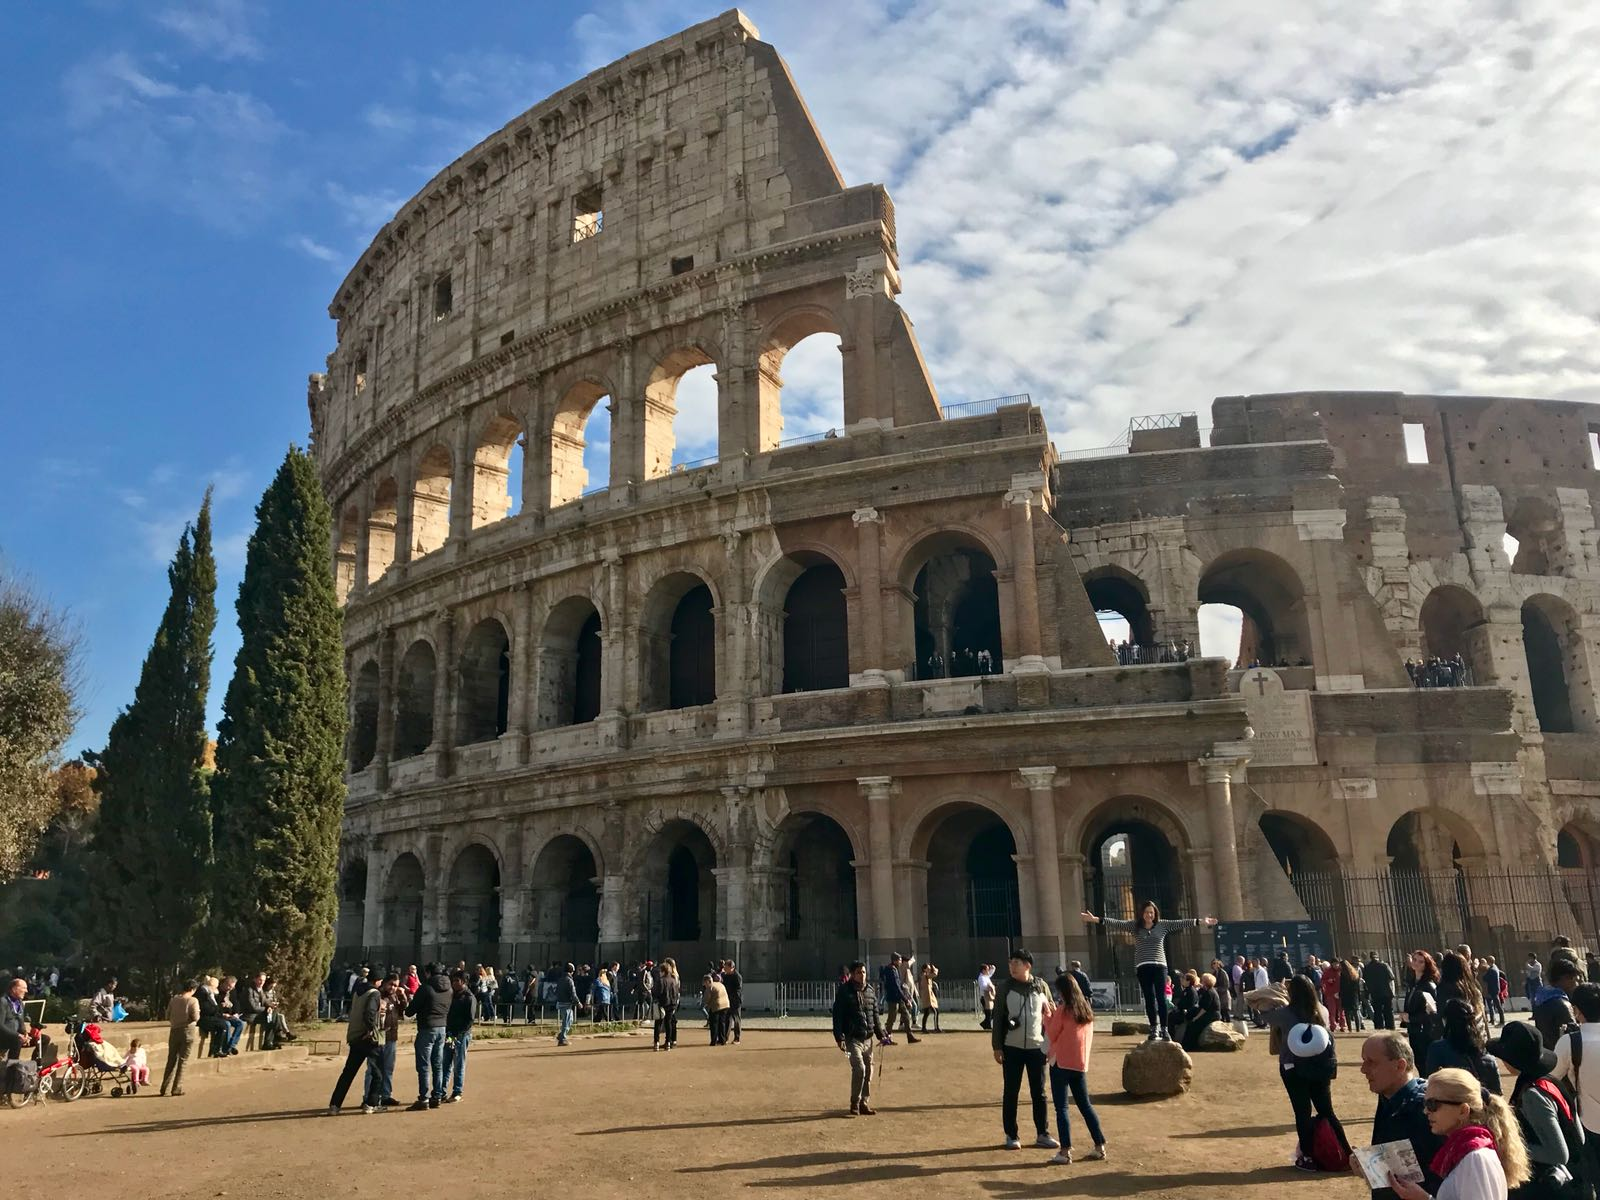 The Colosseum in Rome, from the outside with a crowd in front